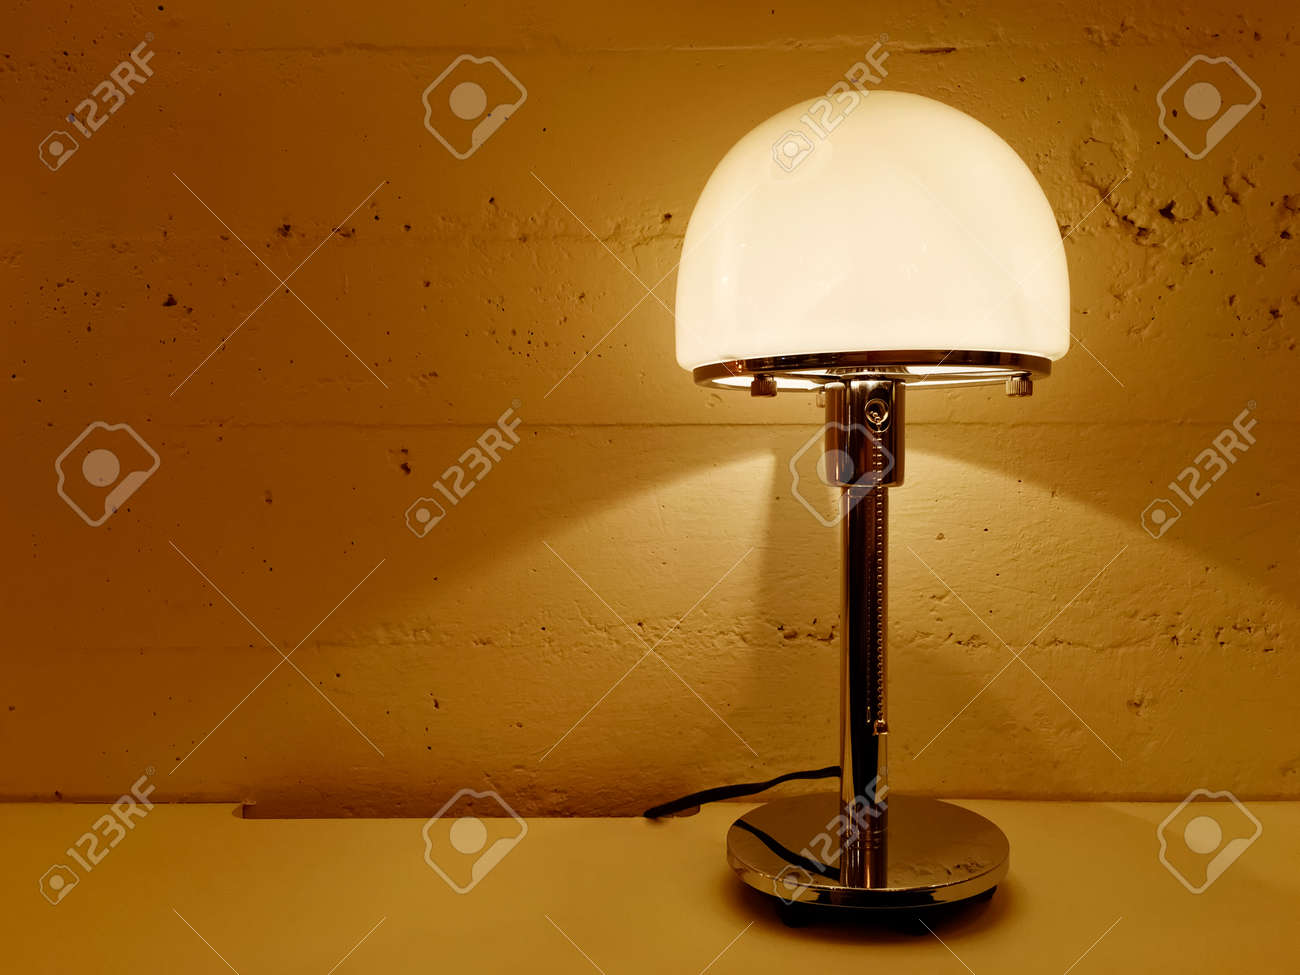 Table Lamp Giving Warm Orange Light Contemporary Design Stock Photo Picture And Royalty Free Image Image 78534654